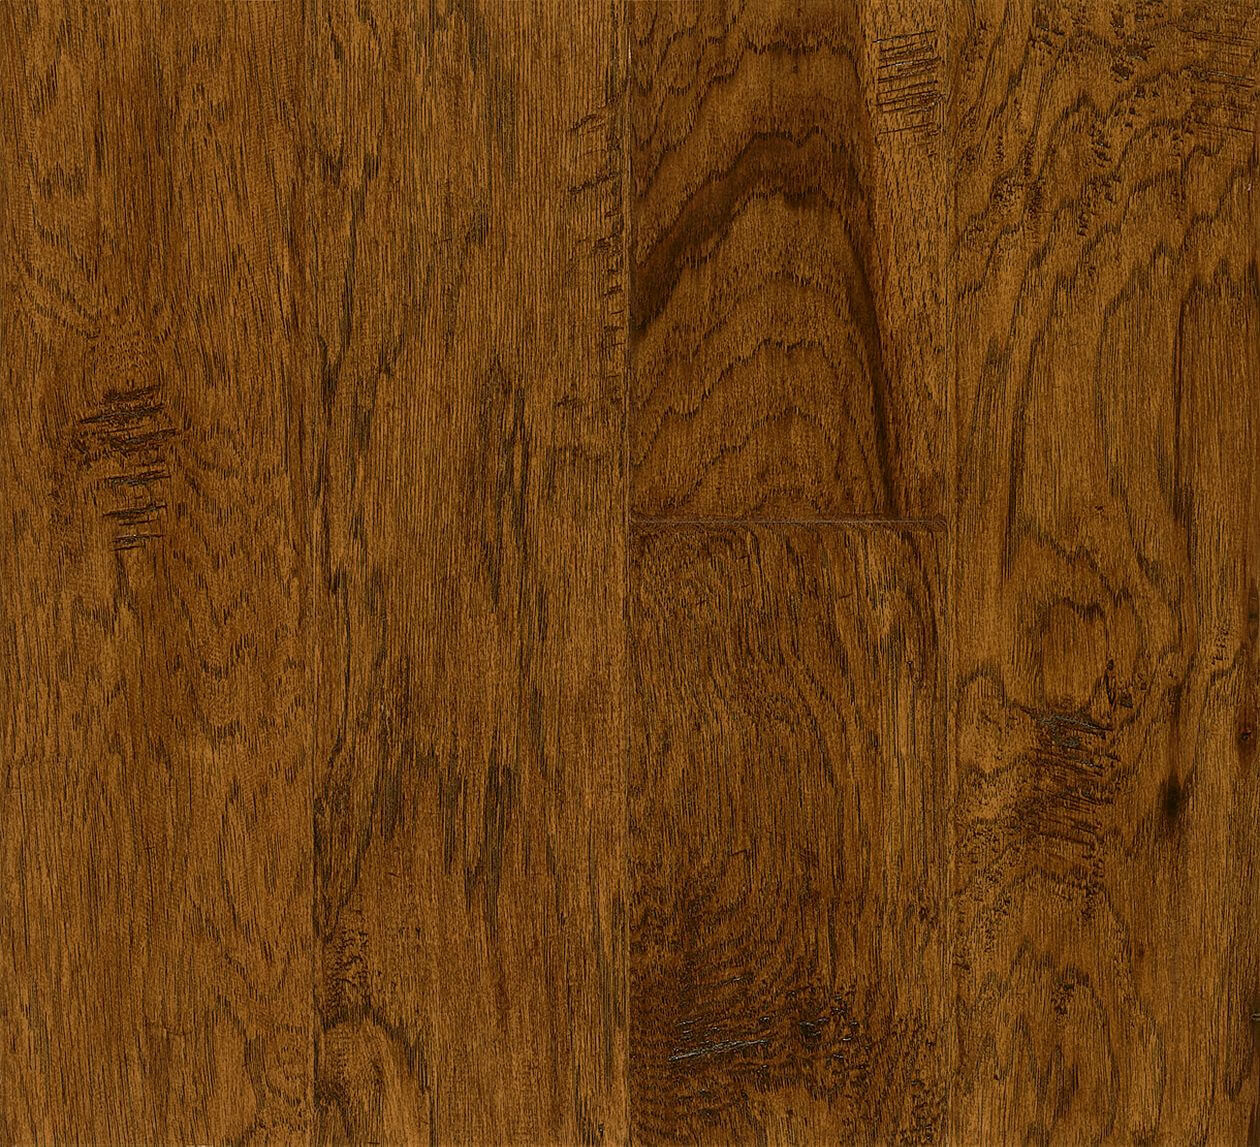 nail down hardwood floor installation cost of the micro dwelling project part 5 flooring the daring gourmet throughout let me take you through the installation steps and then you can see the final outcome